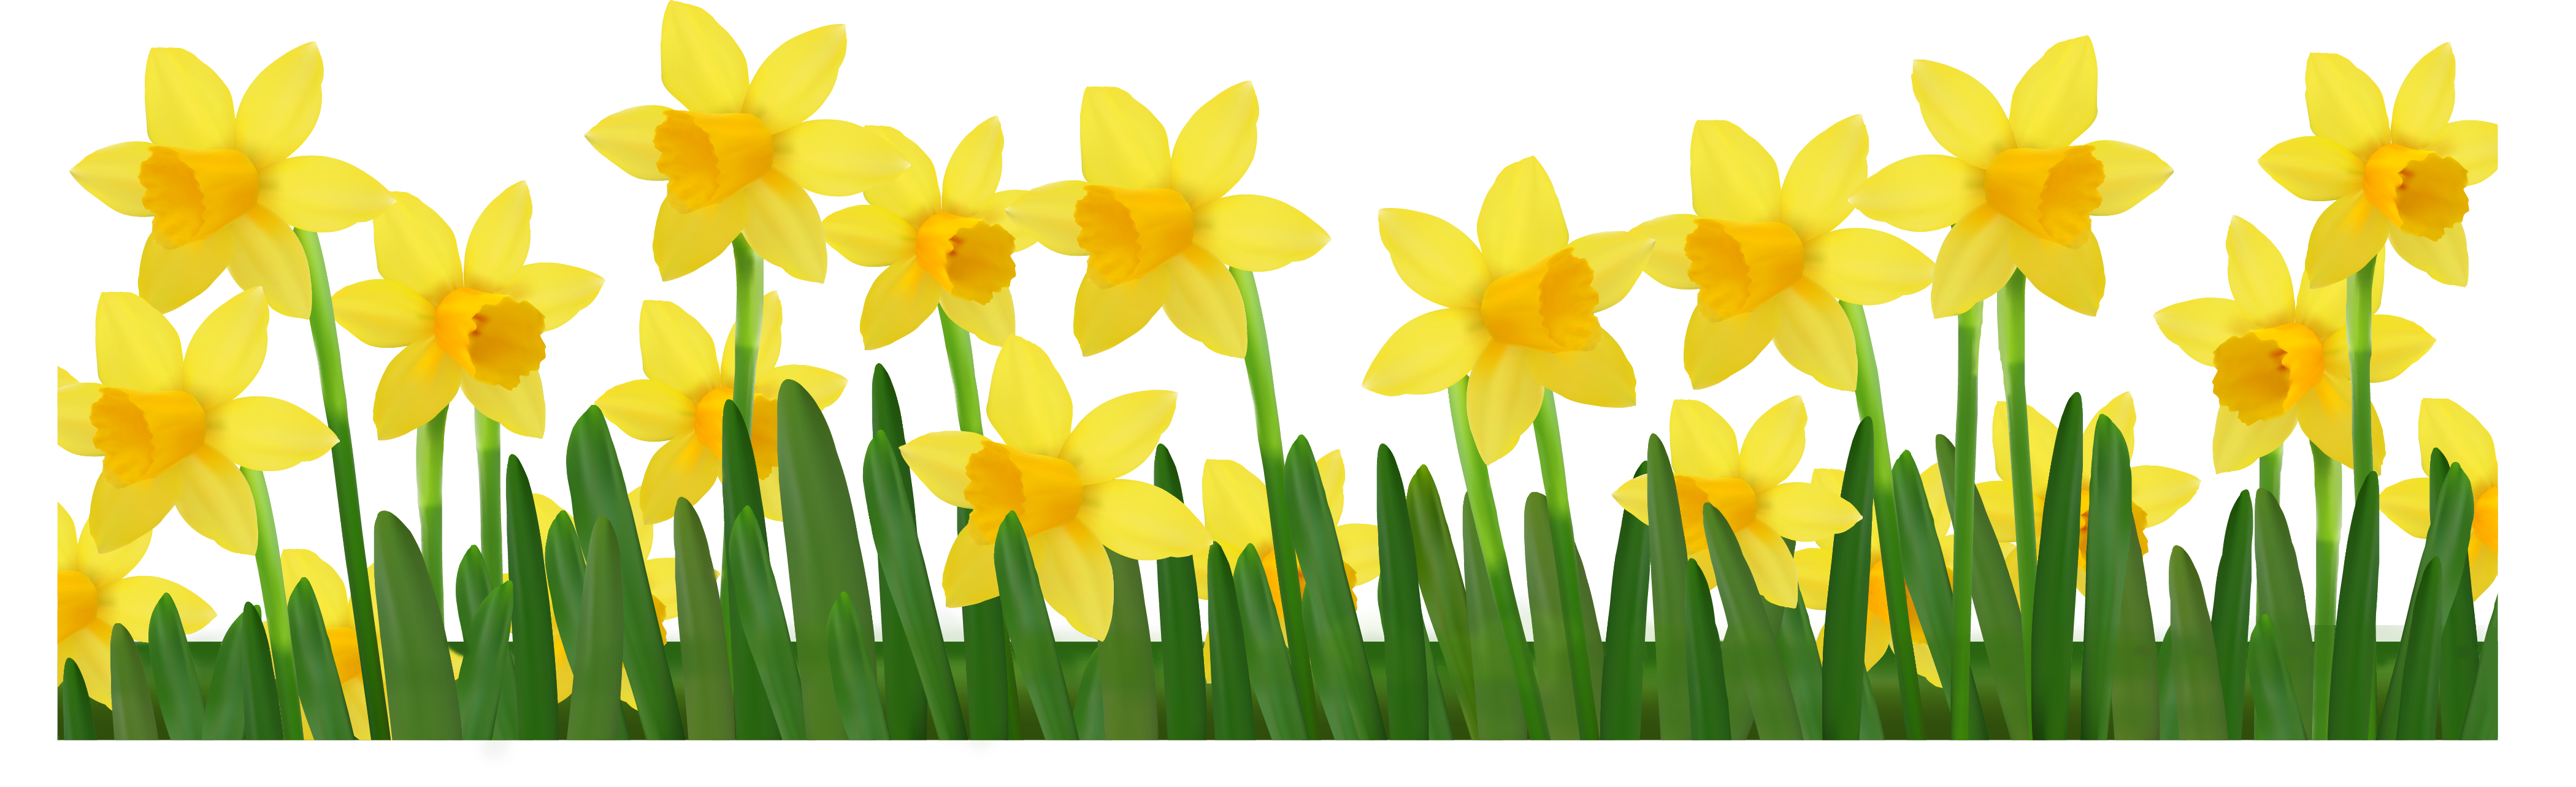 Gardening clipart city. Grass with daffodils png